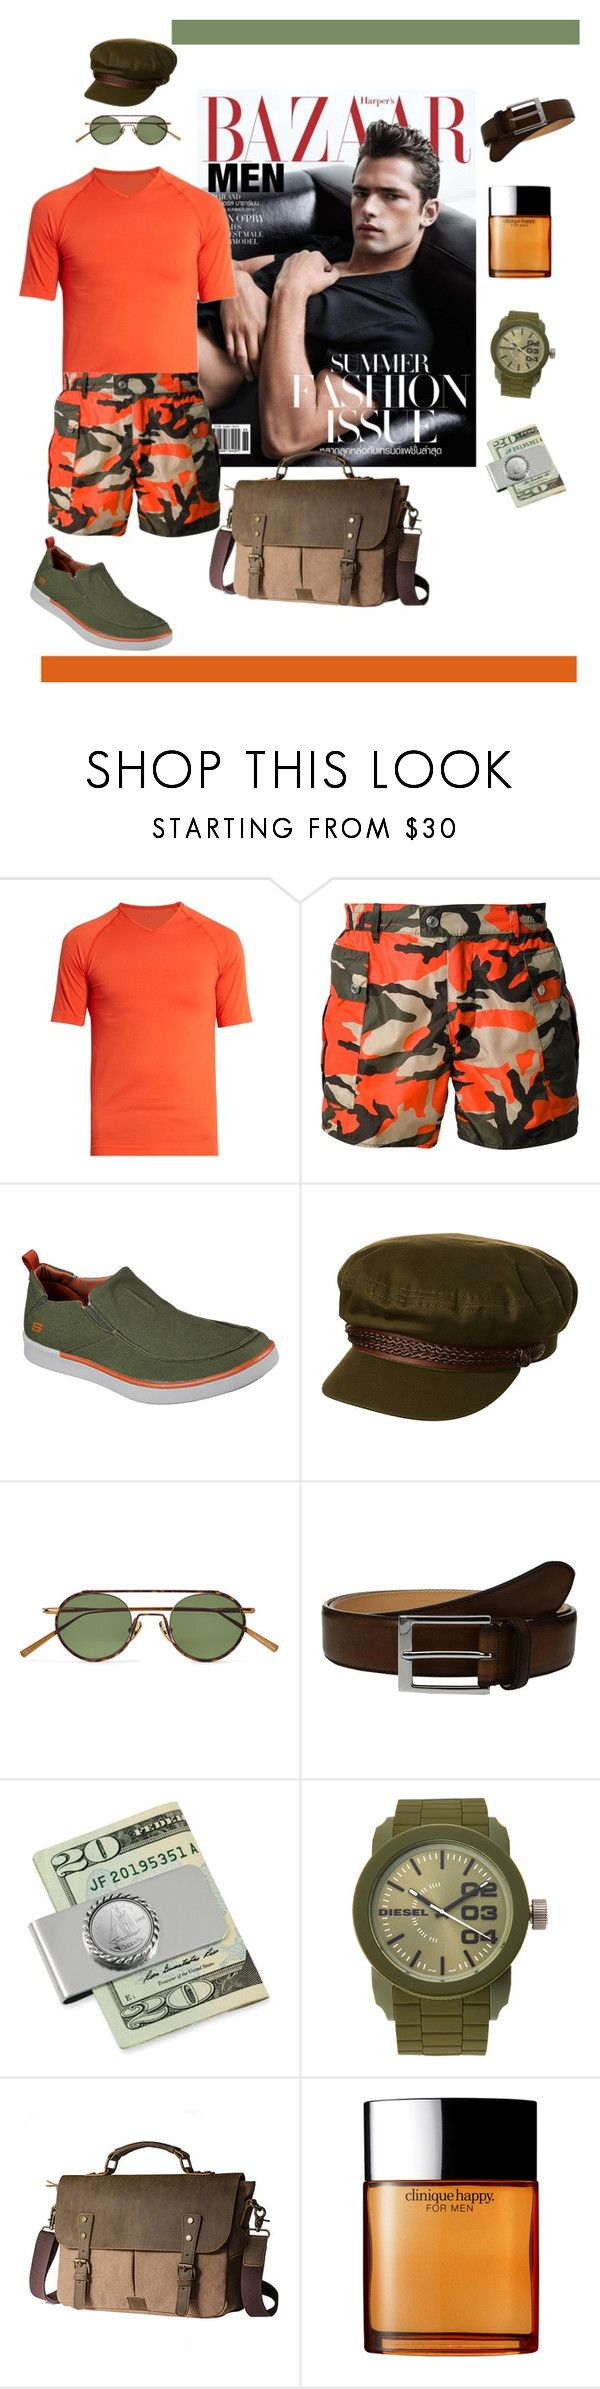 """Take My Temperature"" by scope-stilettos ❤ liked on Polyvore featuring Falke, Dsquared2, Skechers, Brixton, Acne Studios, To Boot New York, American Coin Treasures, Diesel, Clinique and men's fashion"